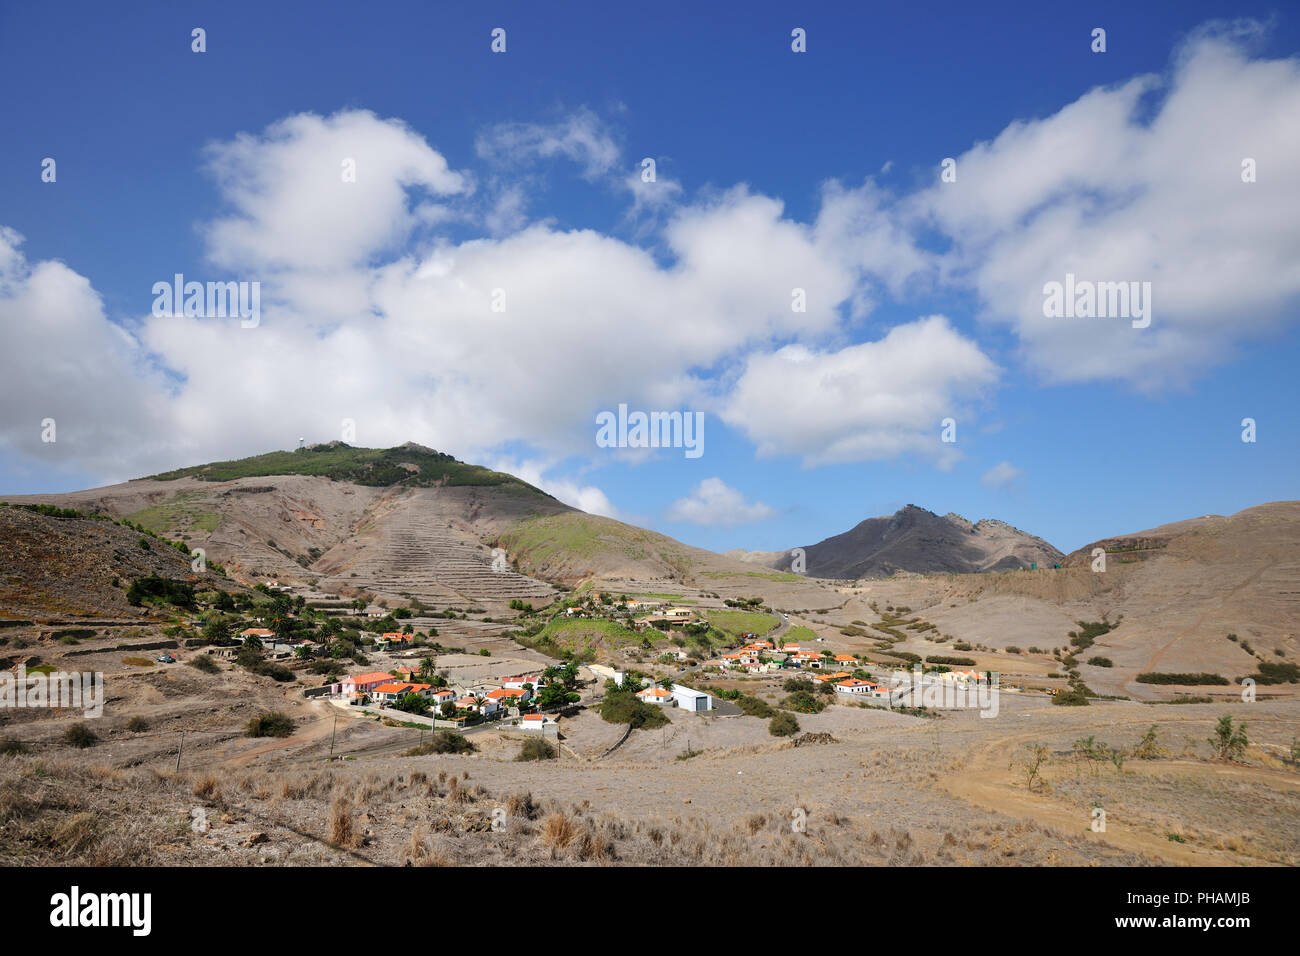 Pico do Facho and Serra de Fora, Porto Santo island. Madeira, Portugal - Stock Image